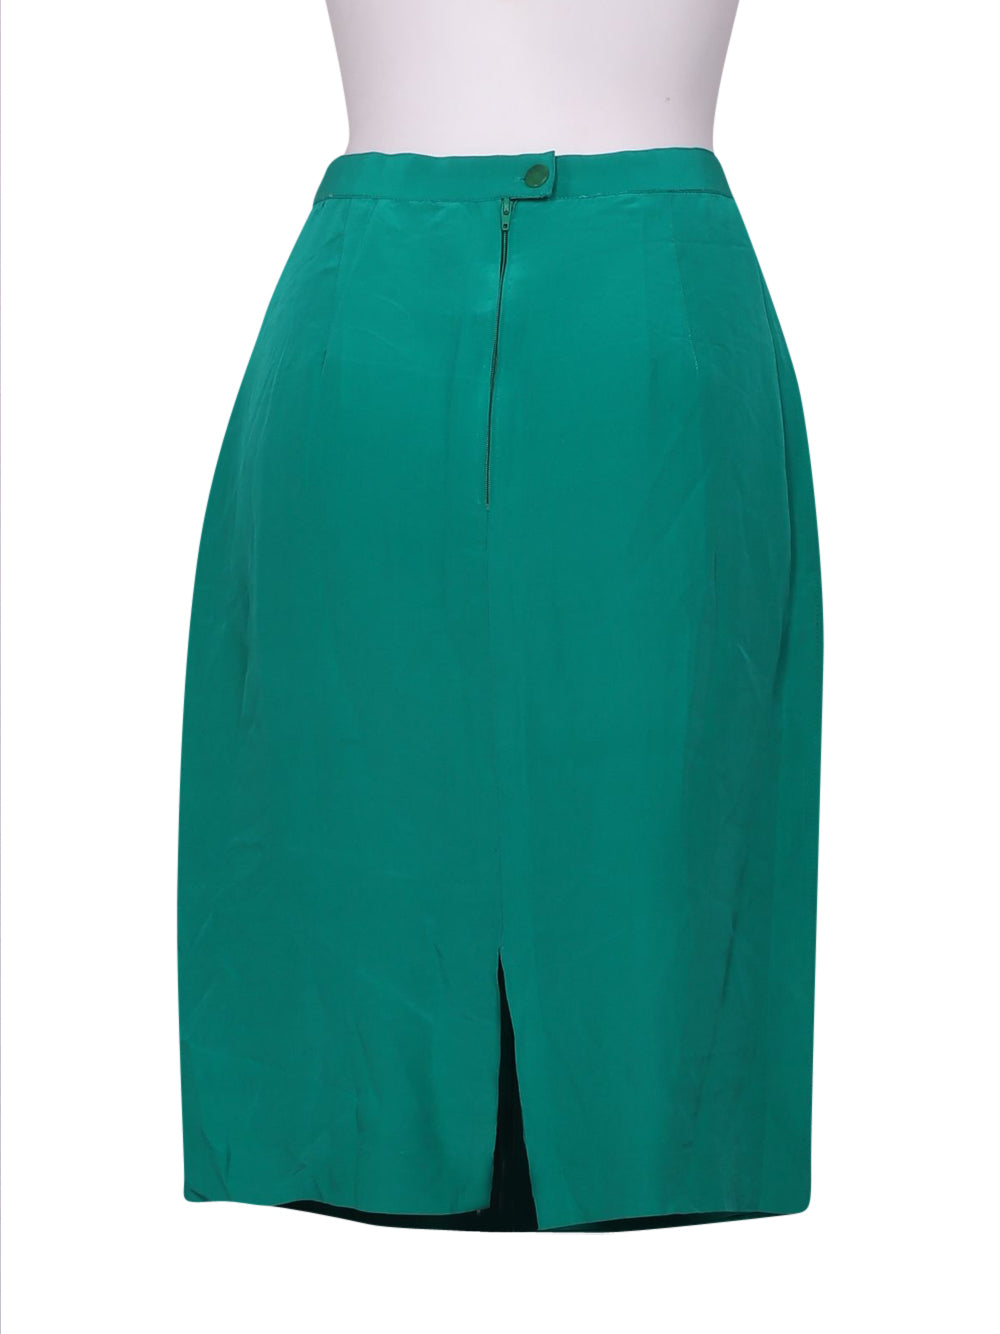 Back photo of Preloved spirit Green Woman's skirt - size 10/M